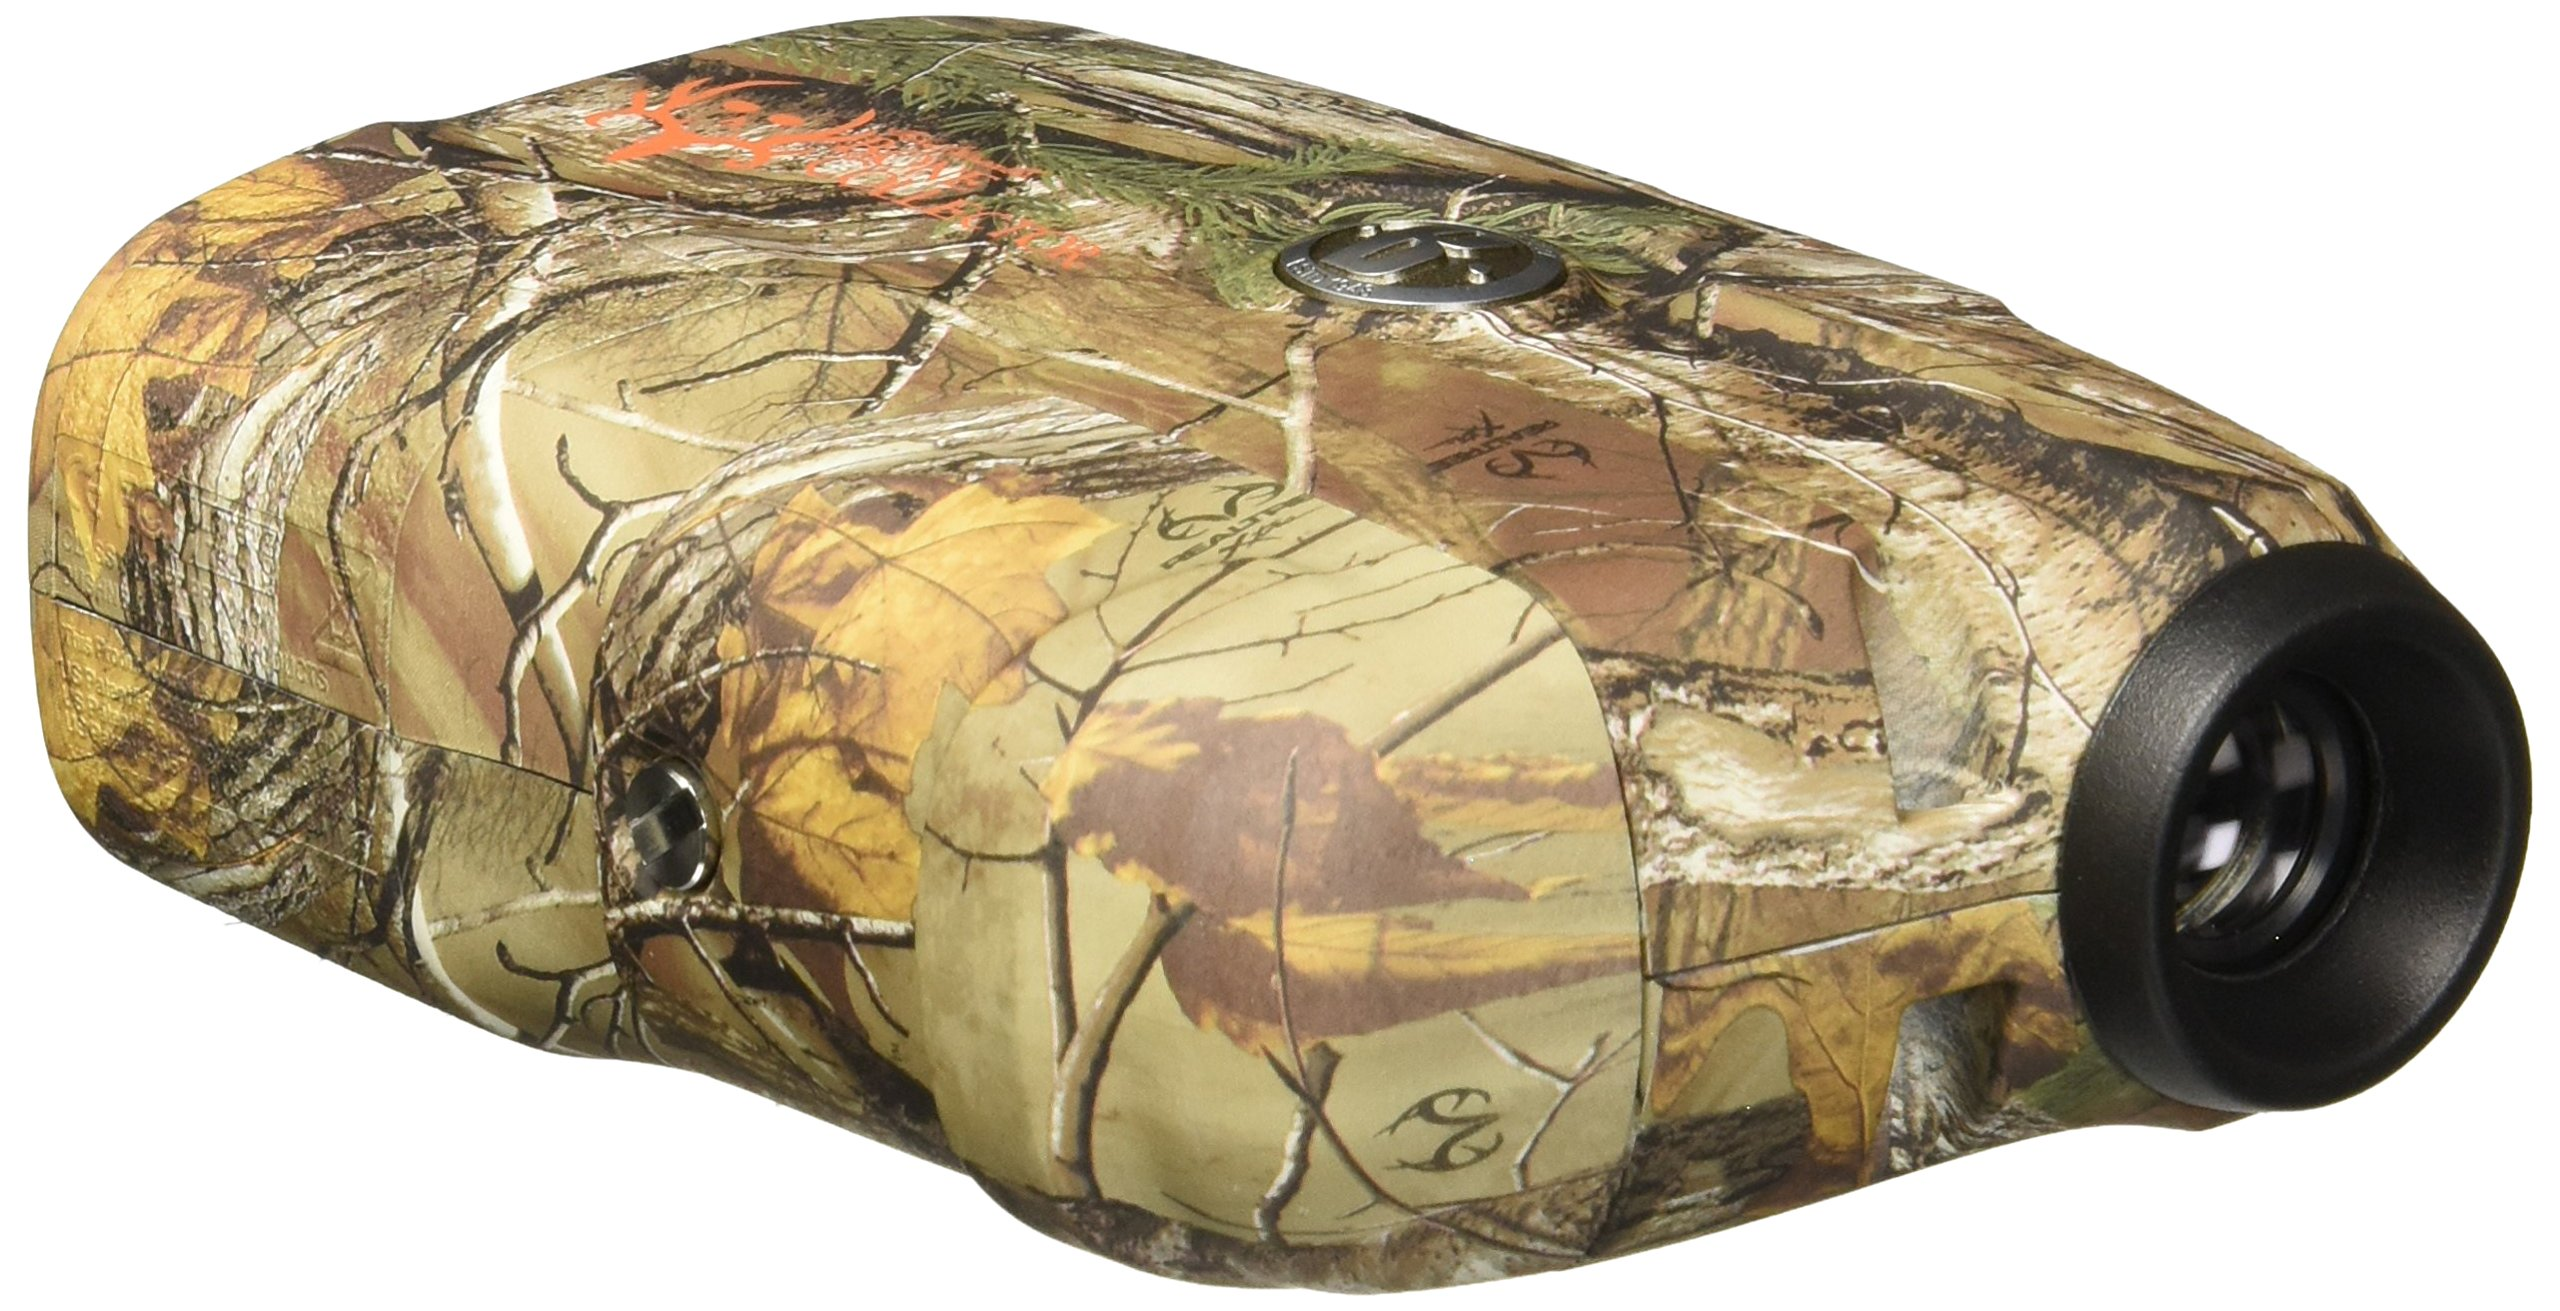 Bushnell 202208 Bone Collector Edition 4x Laser Rangefinder, Realtree Xtra Camo, 20mm by Bushnell (Image #2)